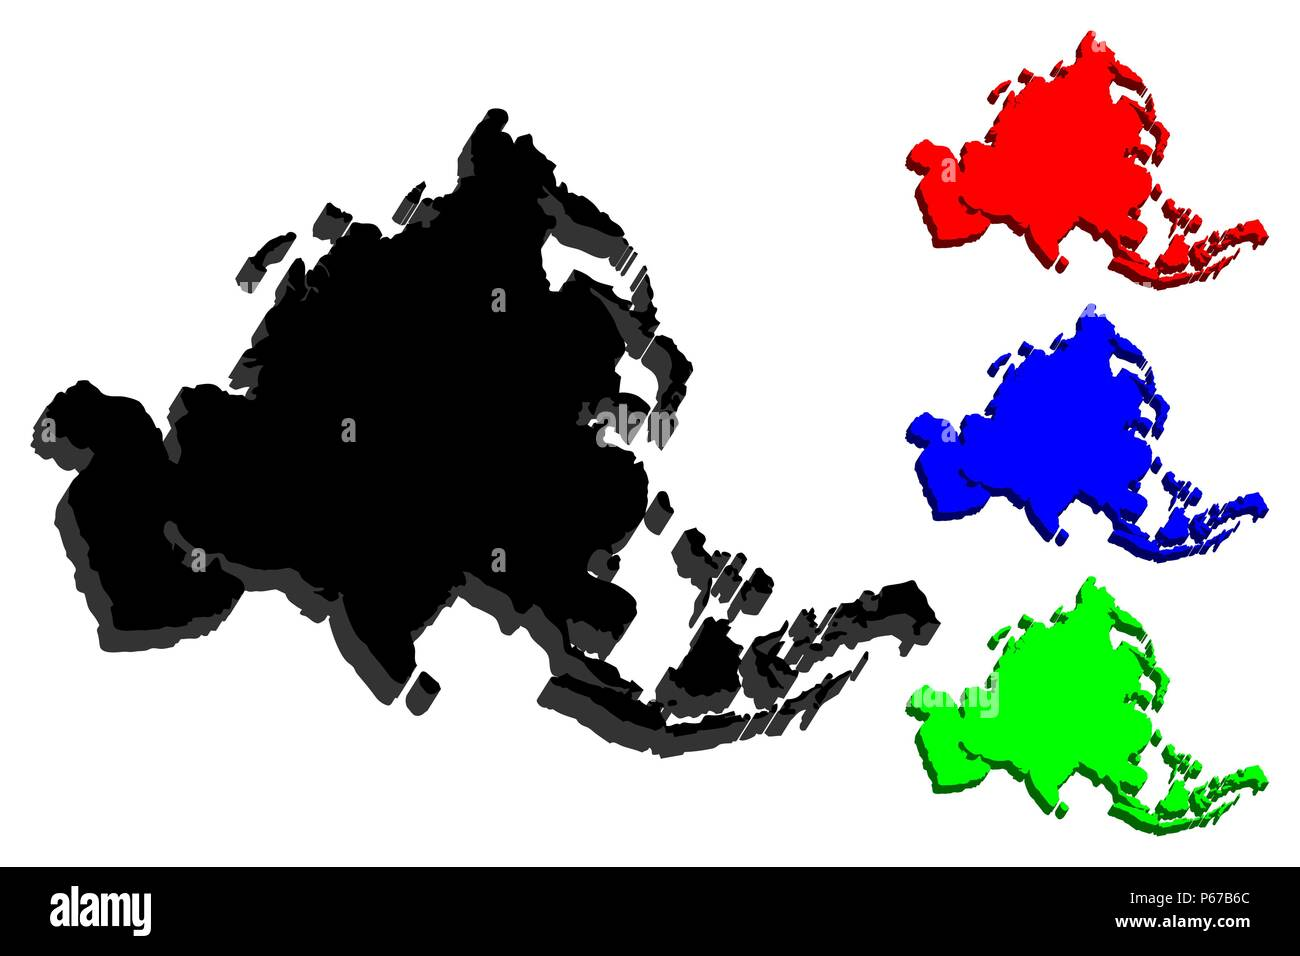 3D map of Asia continent - black, red, blue and green - vector illustration - Stock Vector